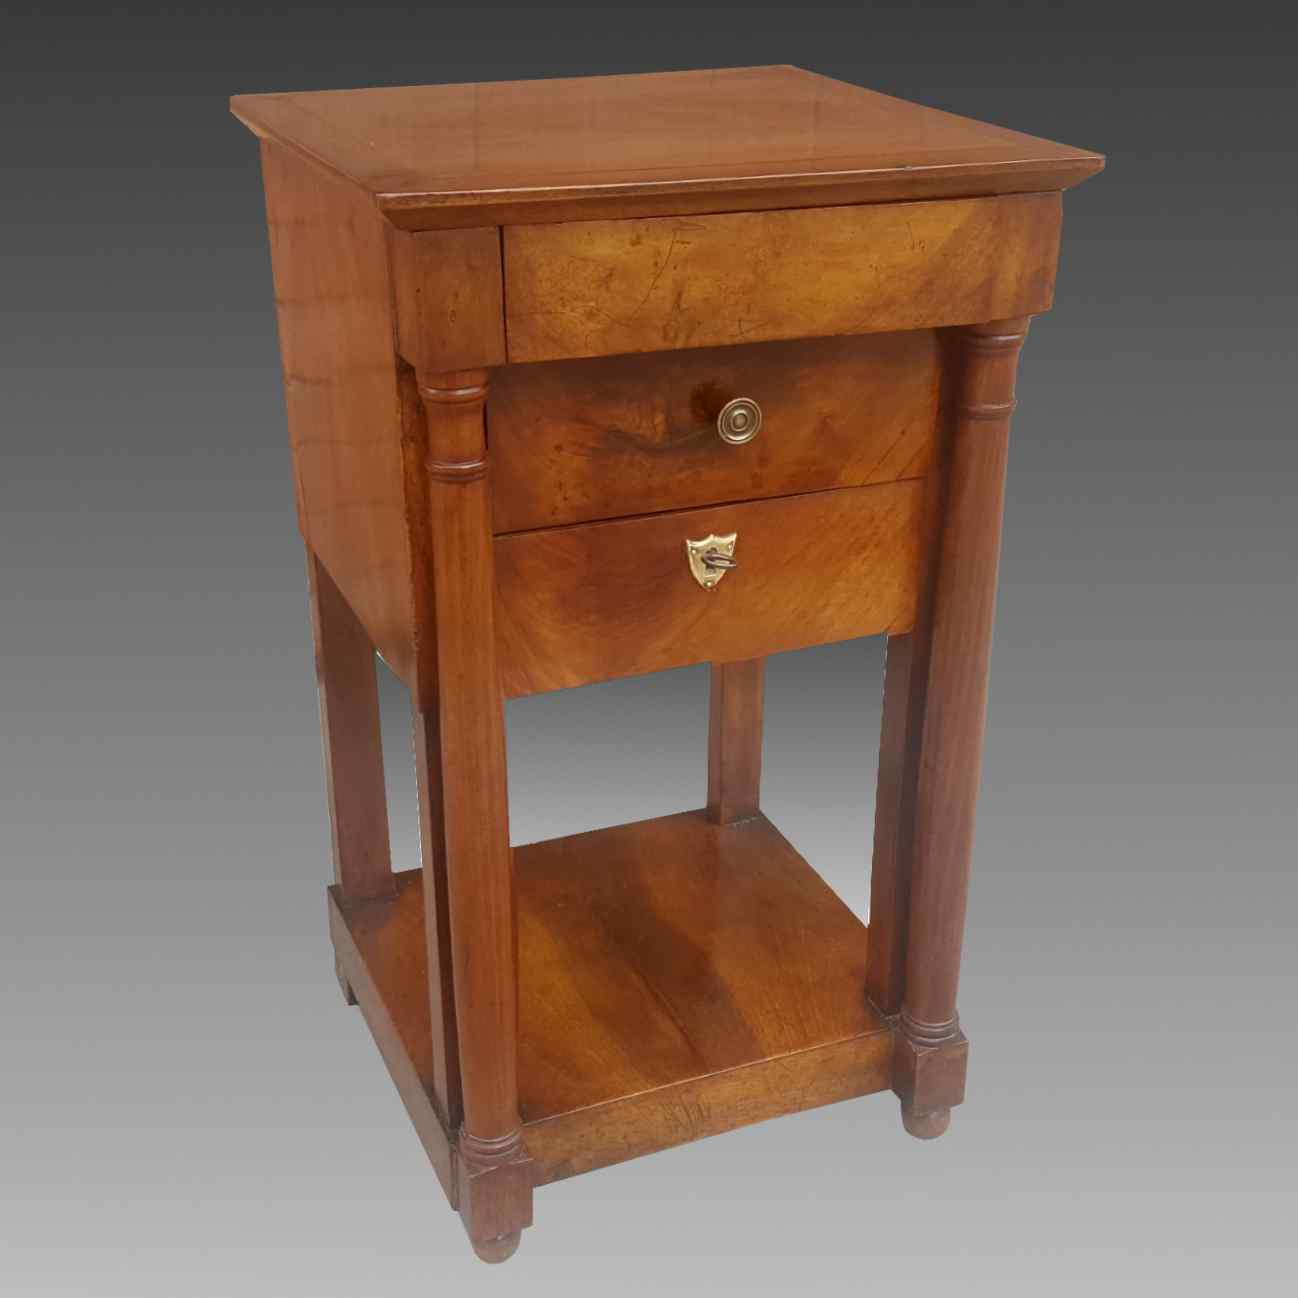 Antique Empire small Table Bedside drawers in walnut - 19th